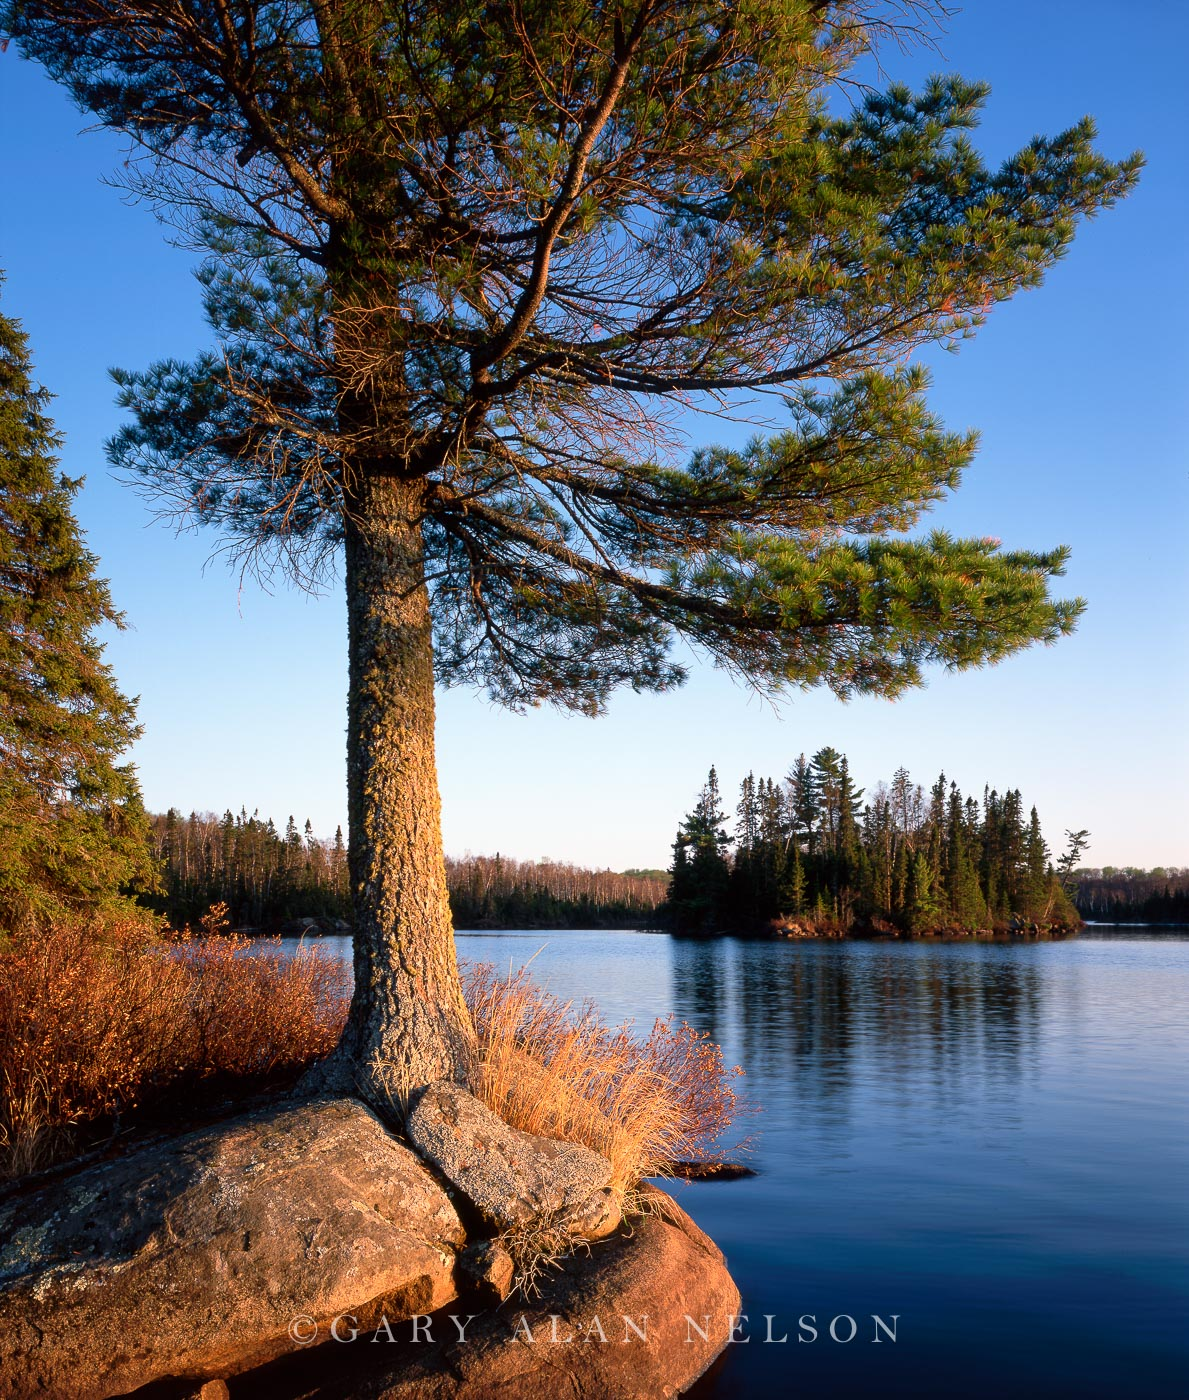 burnt lake, boundary waters canoe area wilderness, minnesota, photo